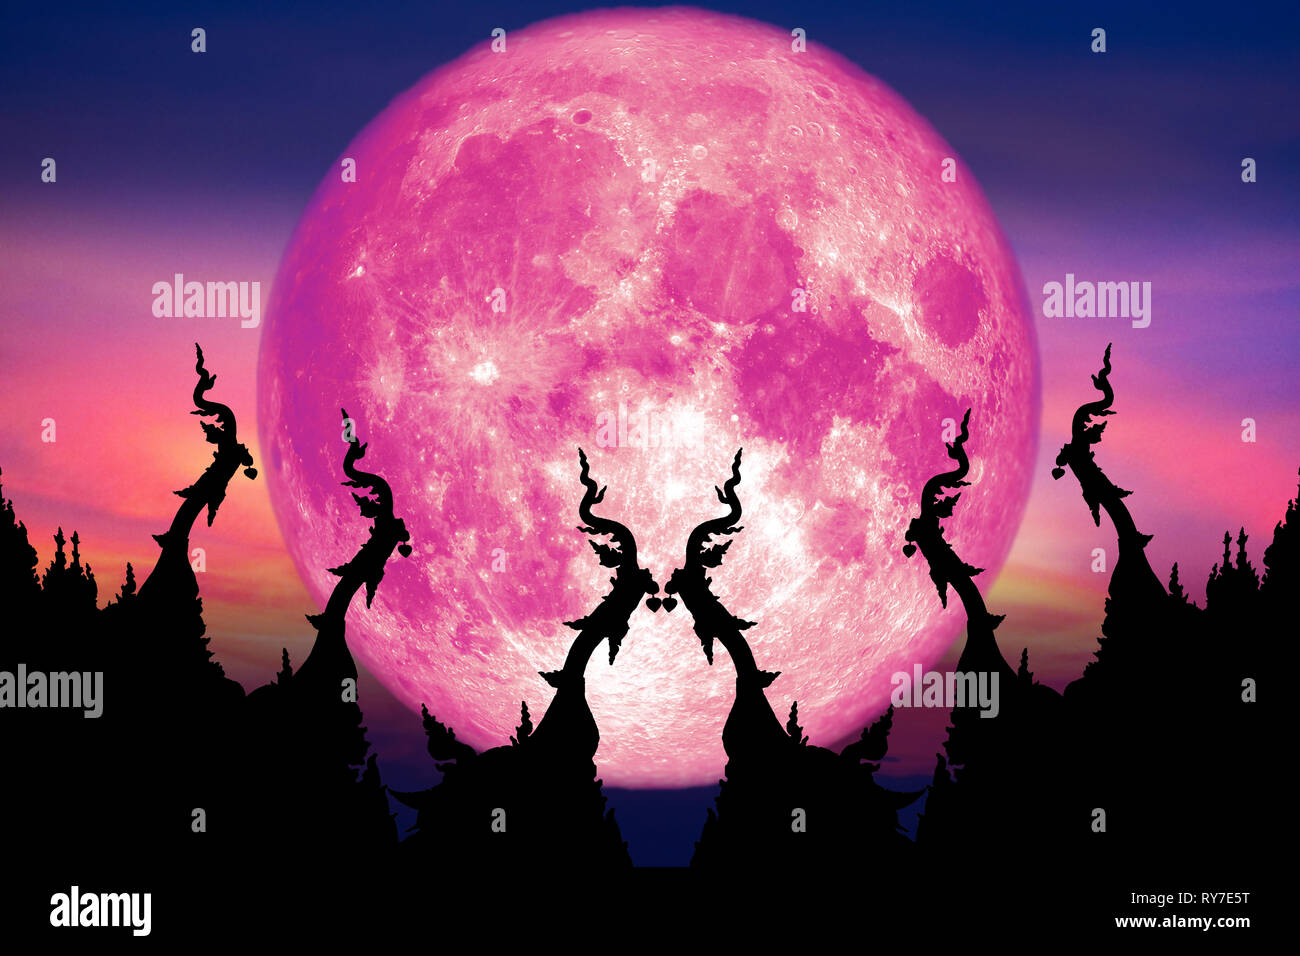 super pink moon back over silhouette art on roof of Buddhist temple and sunset sky, Elements of this image furnished by NASA - Stock Image